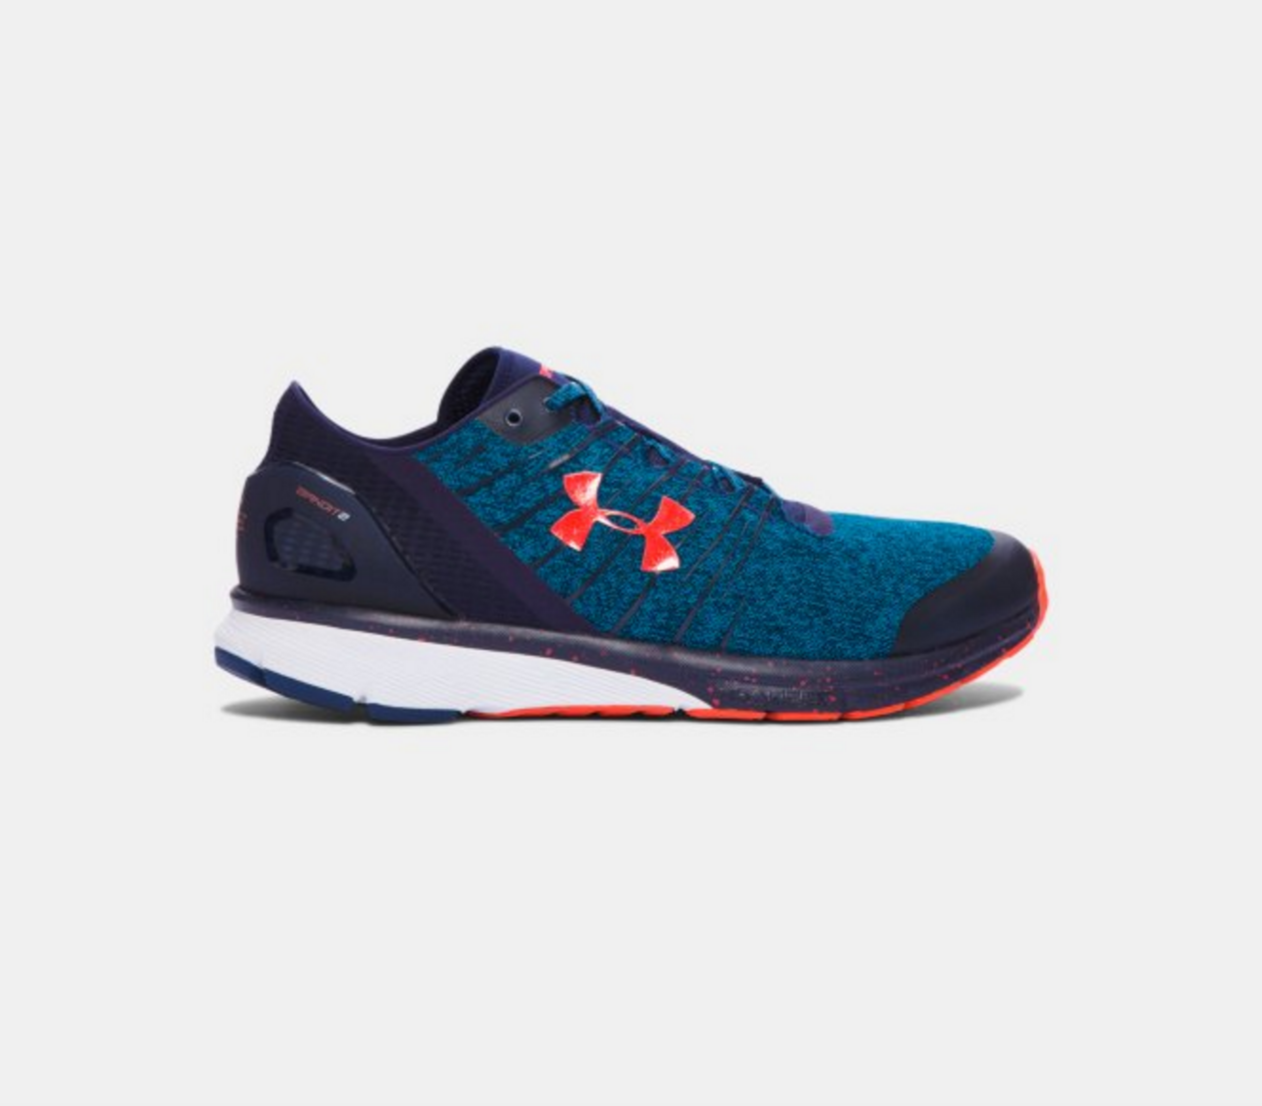 Charged Bandit 2 by Under Armor